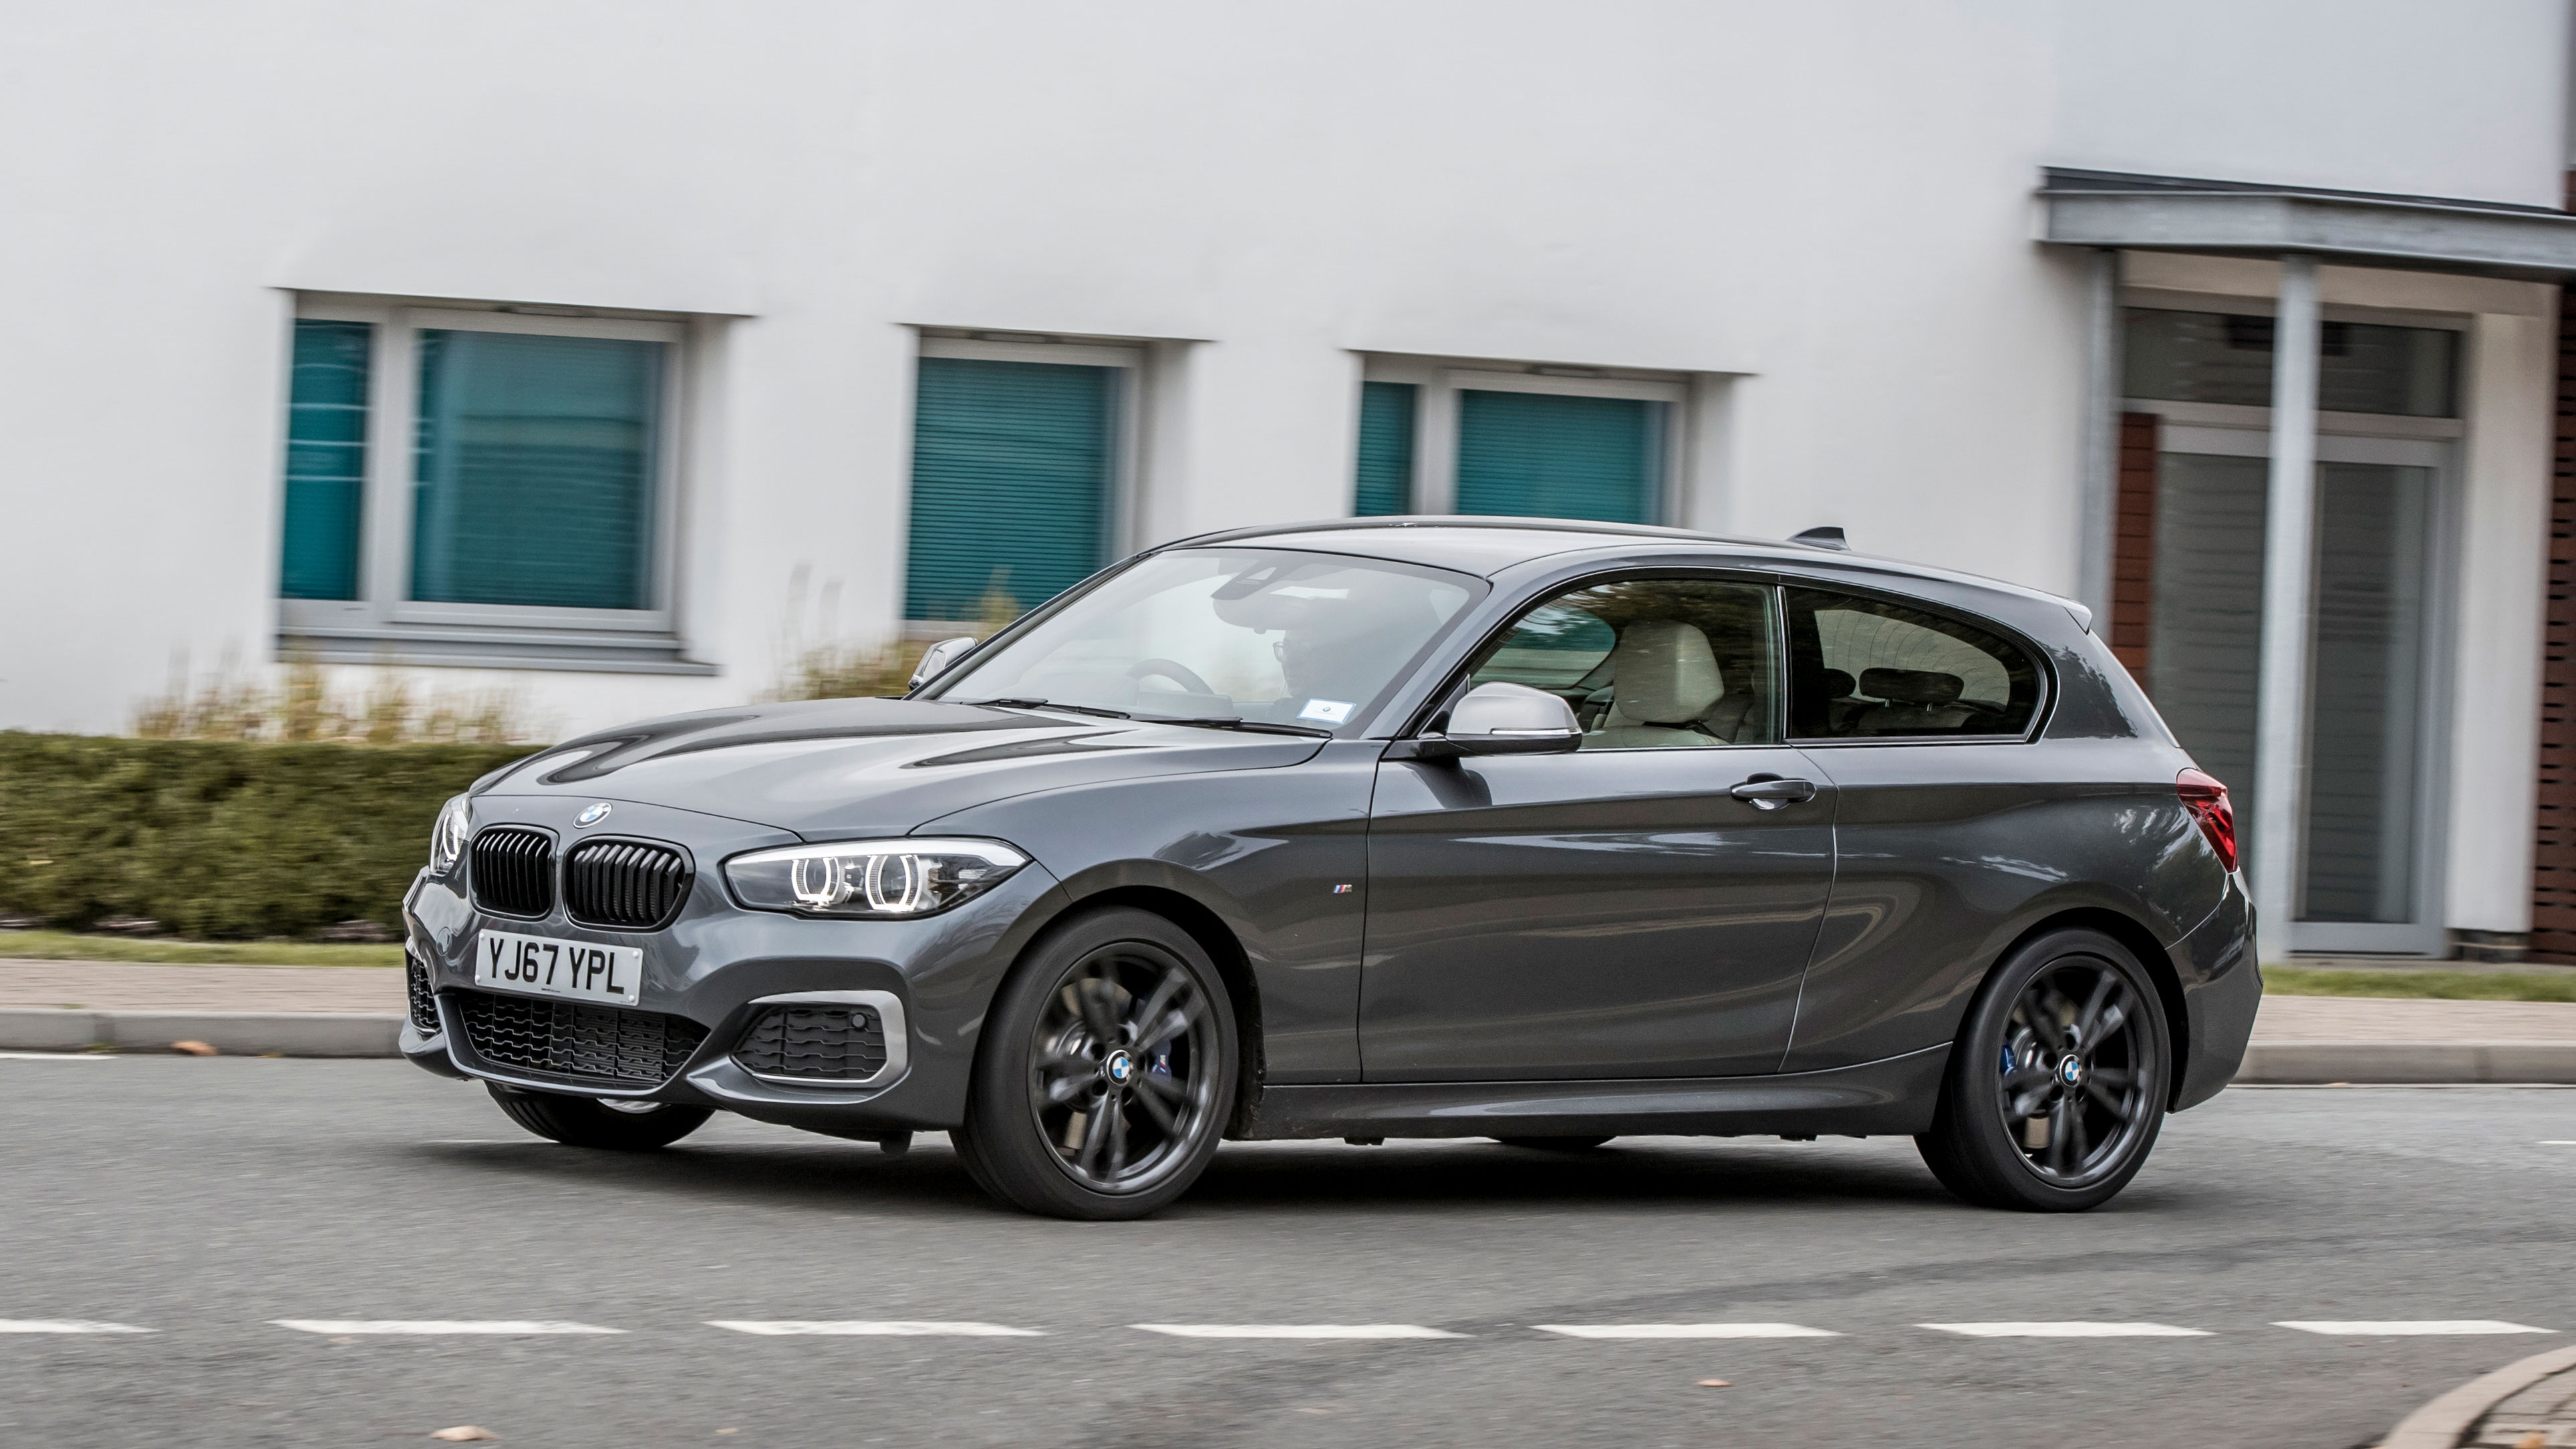 Bmw 1 Series Hatchback 2017 Review Auto Trader Uk